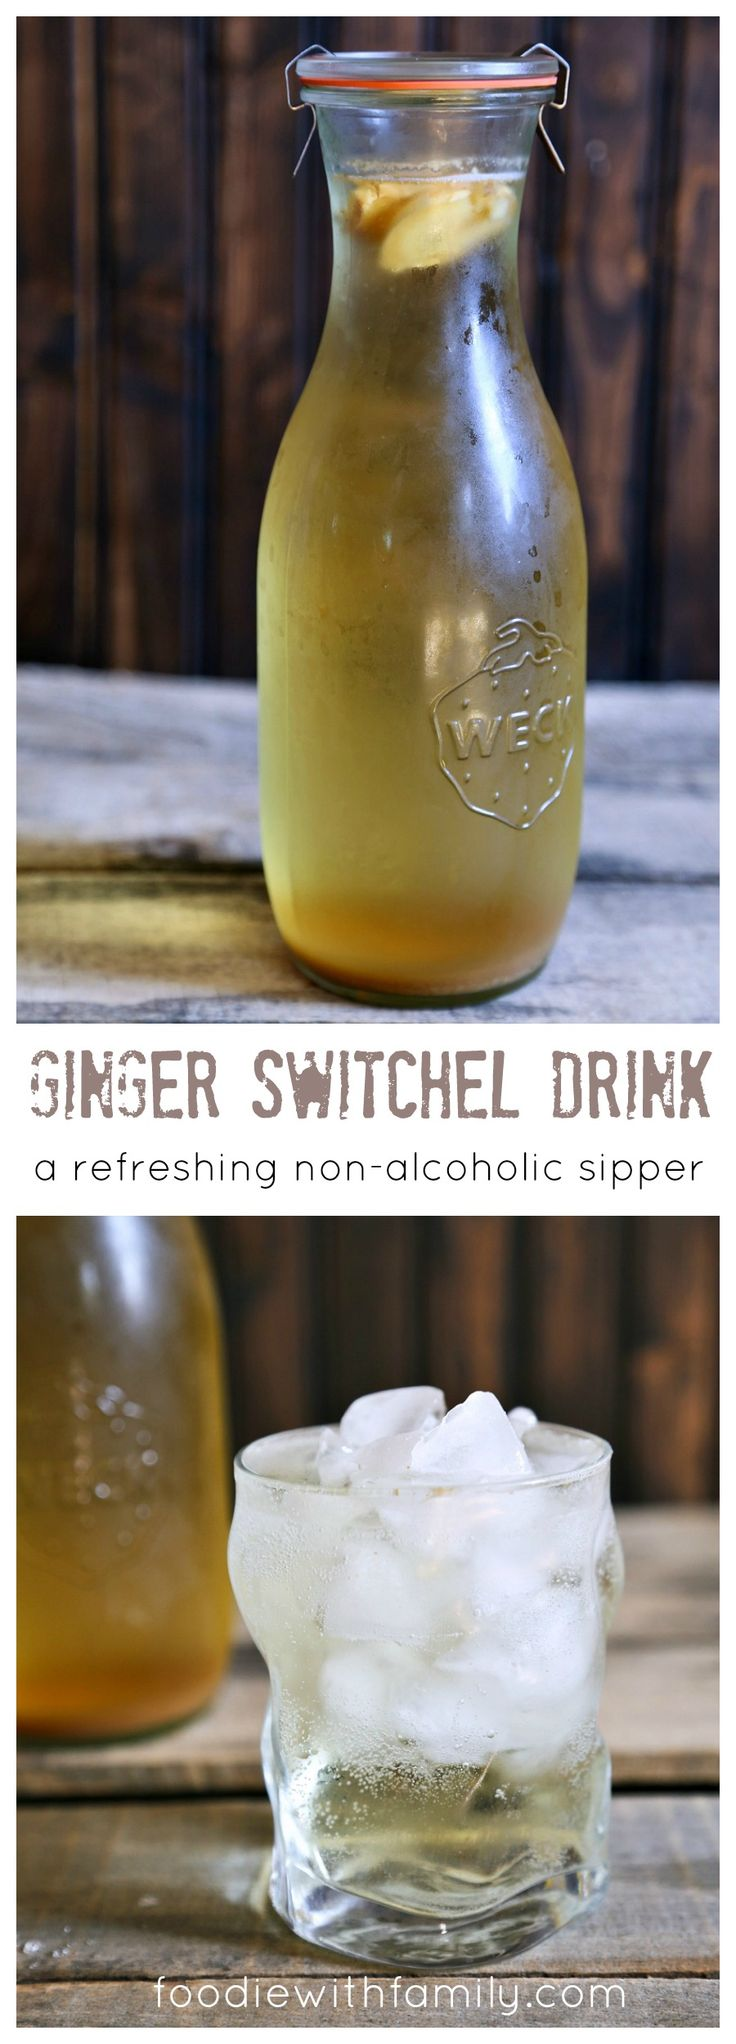 Ginger Switchel Drink made with water, honey, raw apple cider vinegar, and lots of ginger.